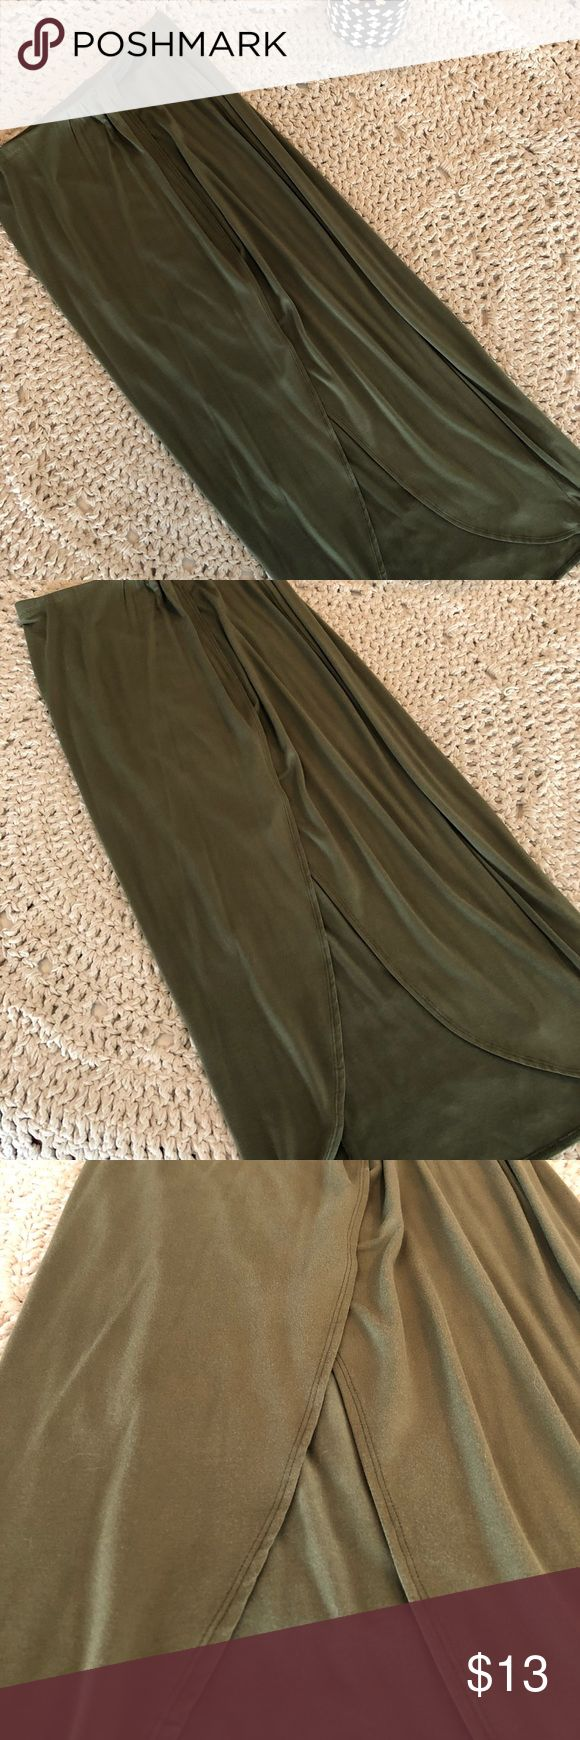 Charlotte Russe Olive Maxi Skirt This skirt has never been worn and I'm too embarrassed to say I can't pull it off! Seems to show almost every bump and curve but is so stylish. I love it! So cute and perfect for summer concerts or fall outfits. I like to say the opening and slit remind me of a tulip on the bottom. Great color and quality for the brand. Charlotte Russe Skirts Maxi